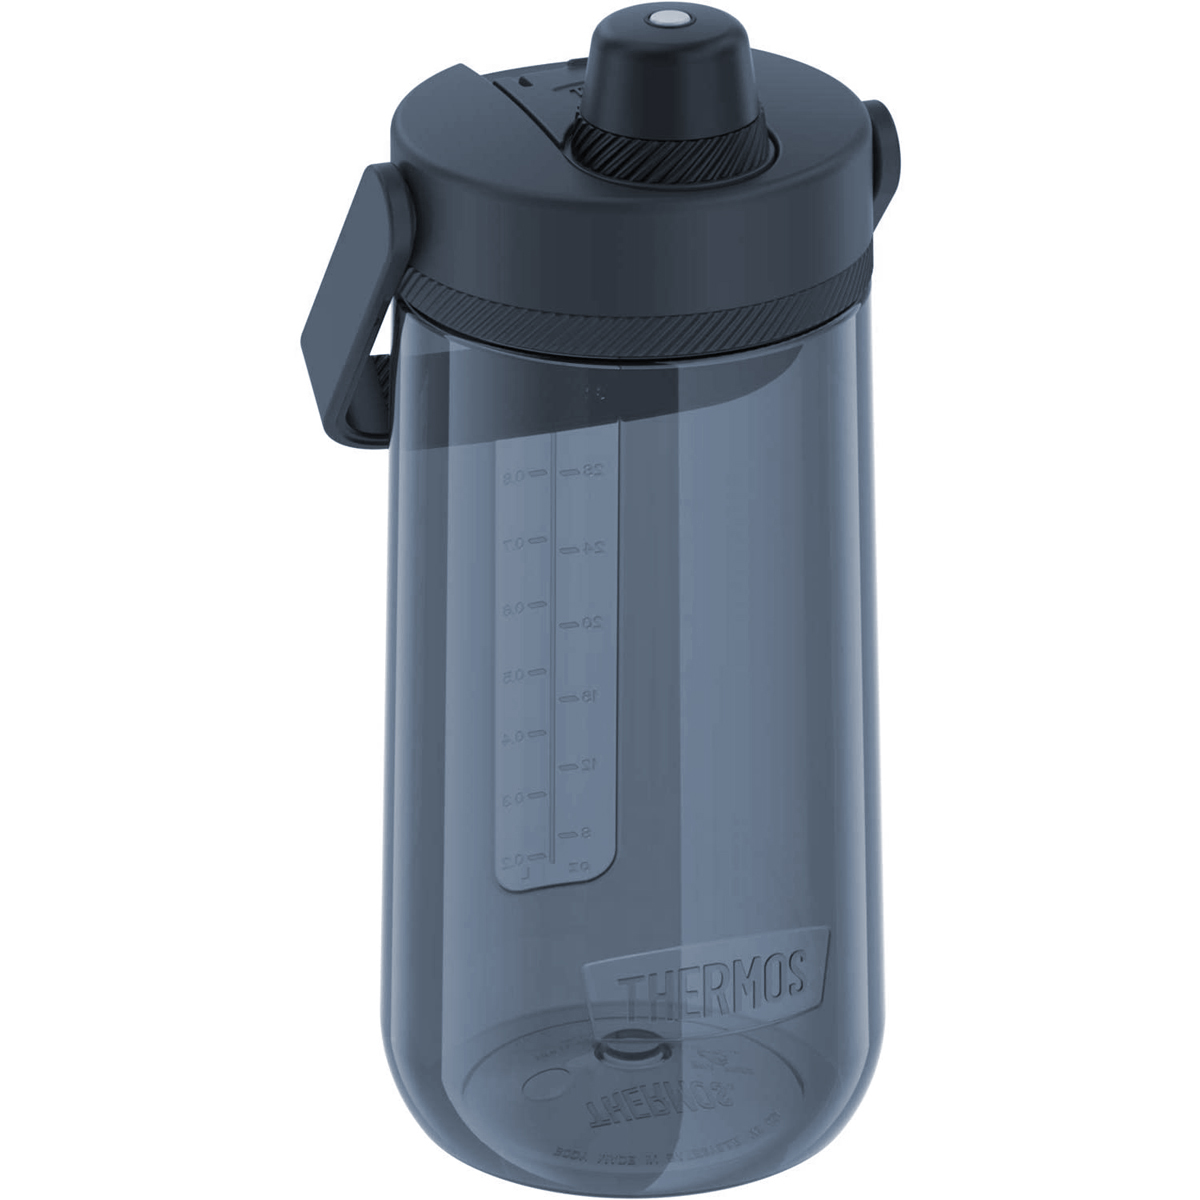 Thermos-40-oz-Guardian-Collection-Hard-Plastic-Hydration-Bottle-with-Spout thumbnail 8